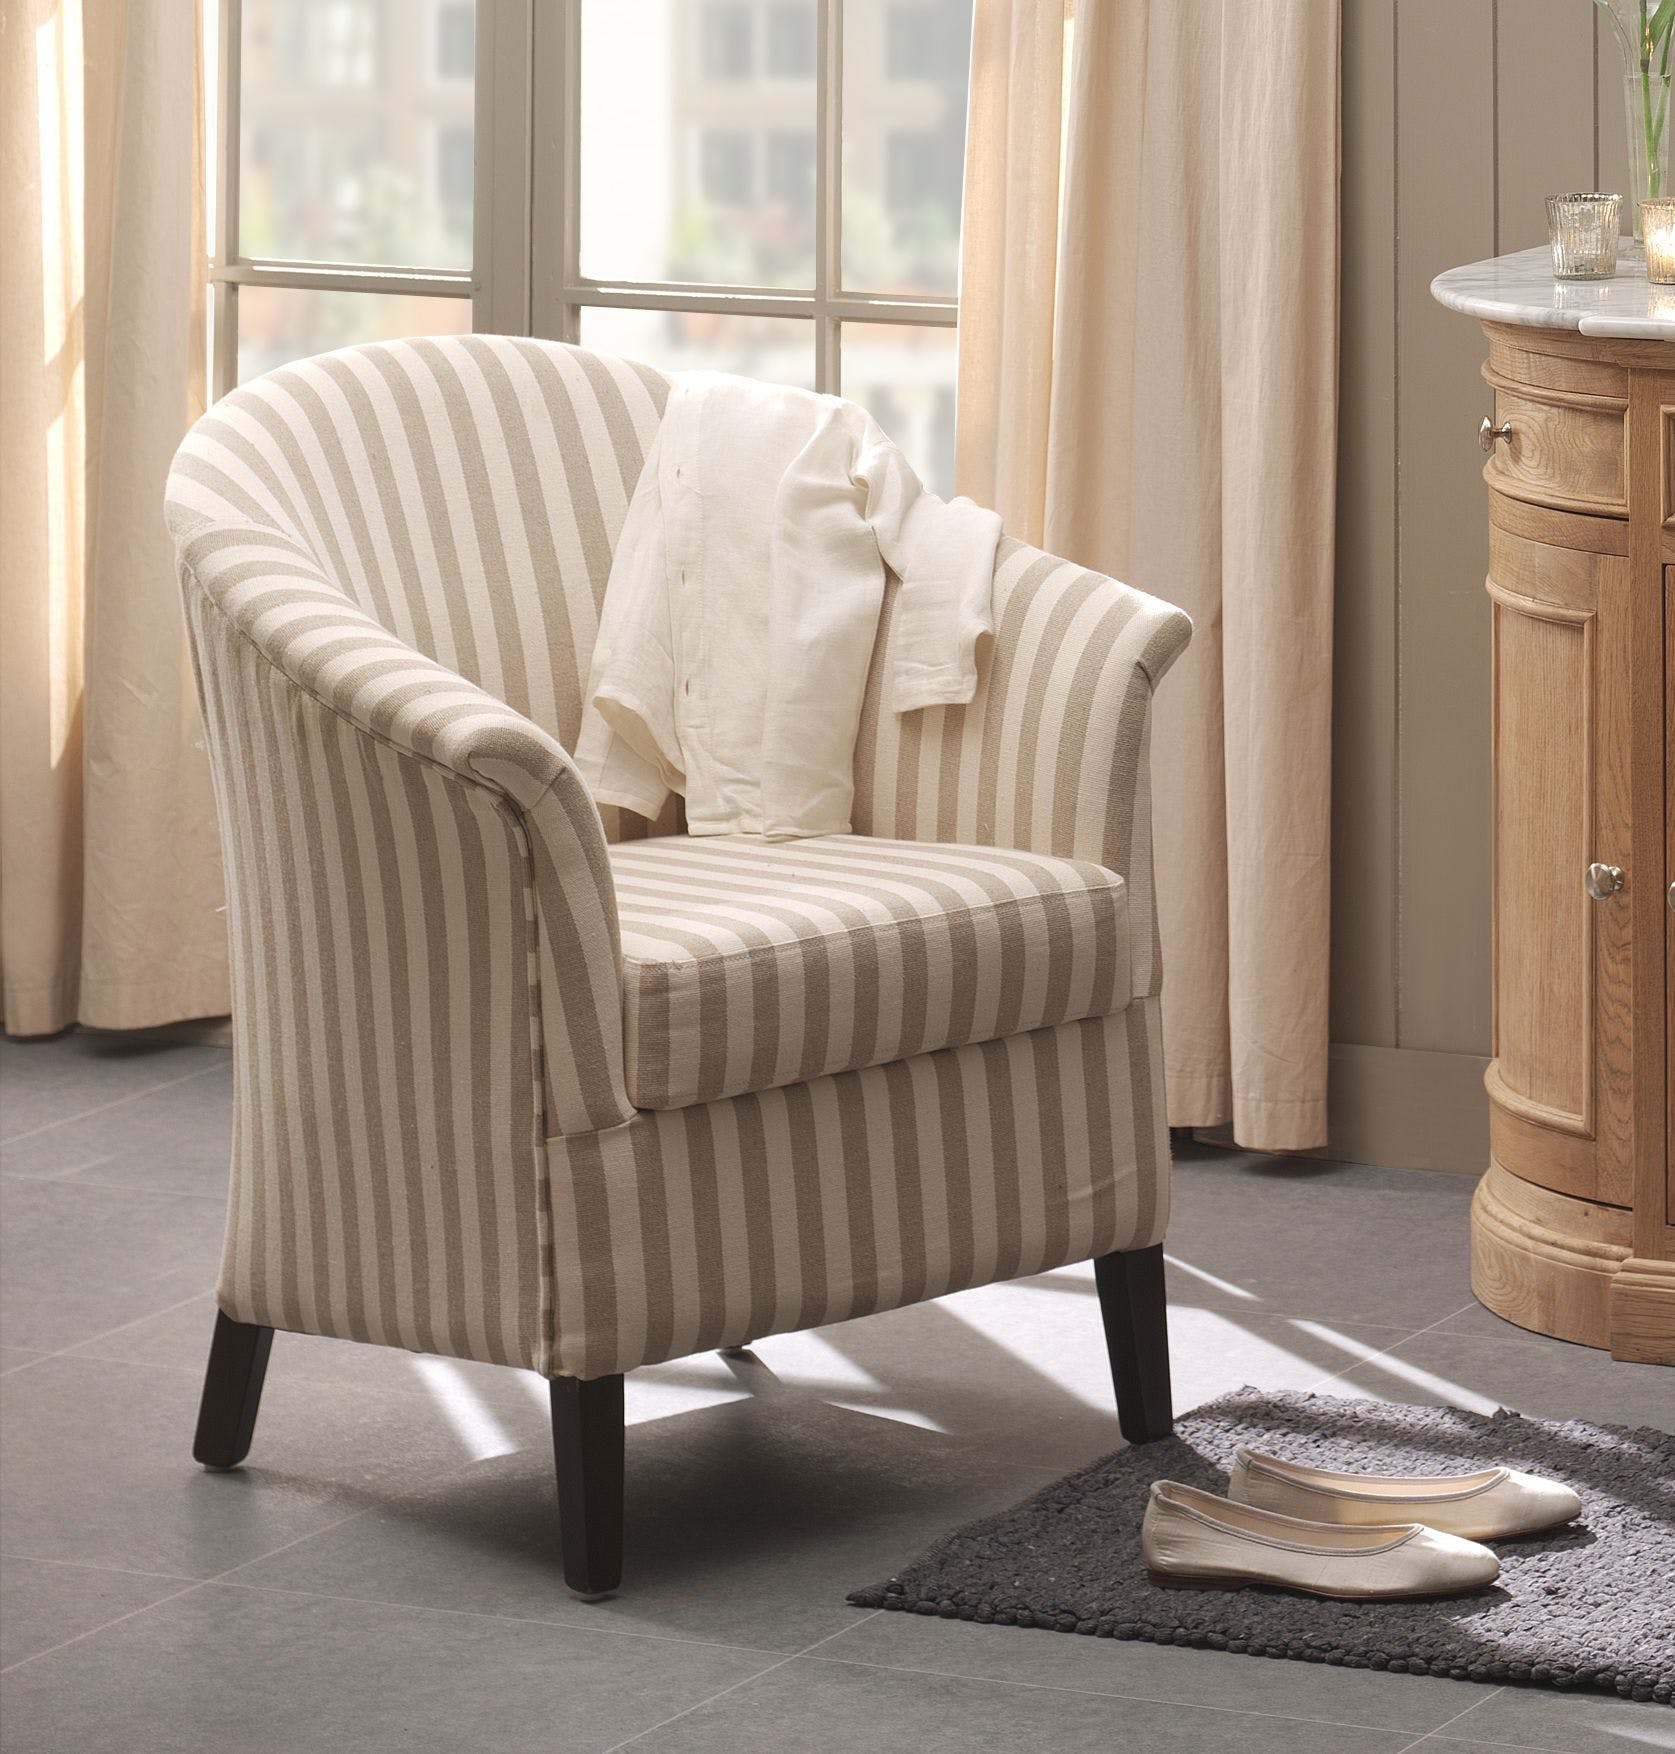 Fauteuil cabriolet blanc crème rayures MIRA